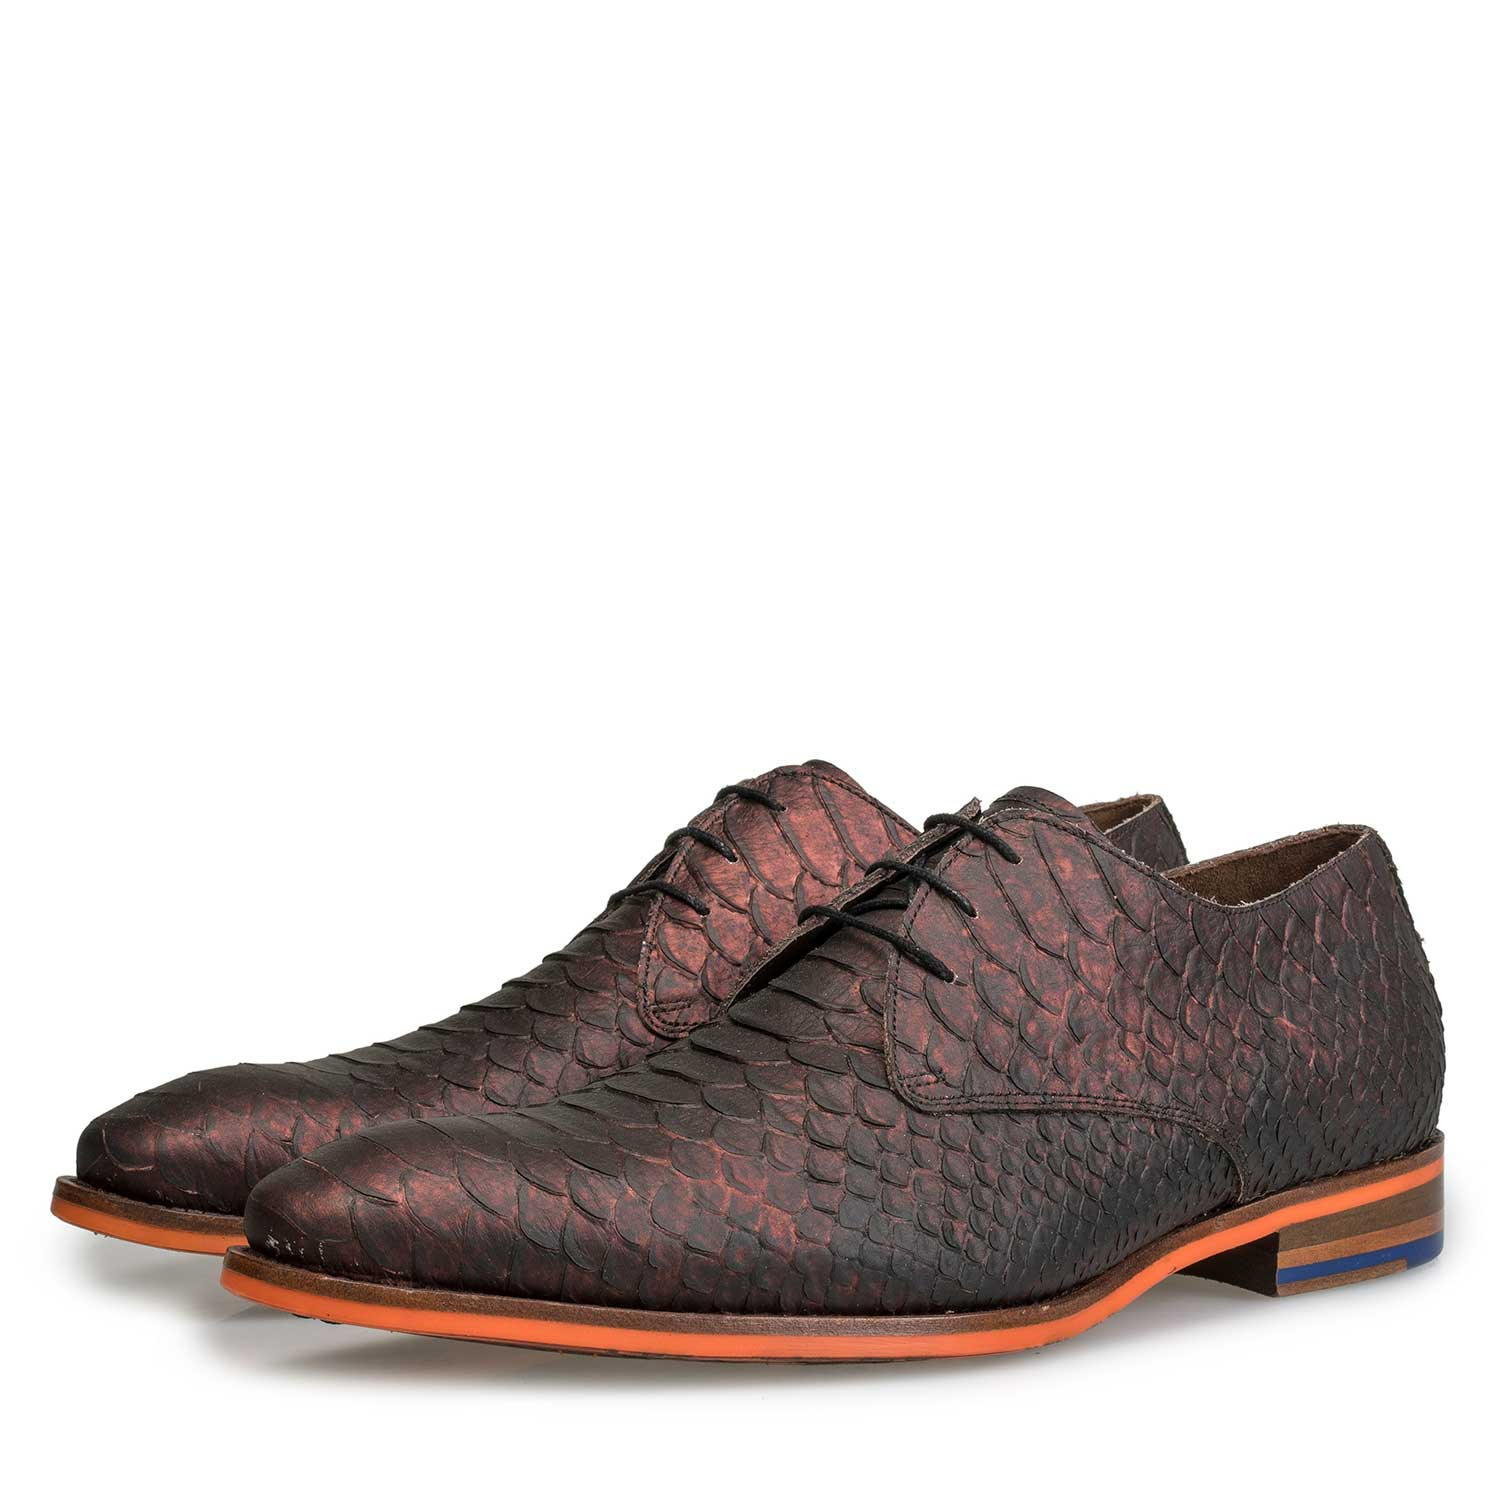 18077/01 - Leather lace shoe with snake print and orange outsole